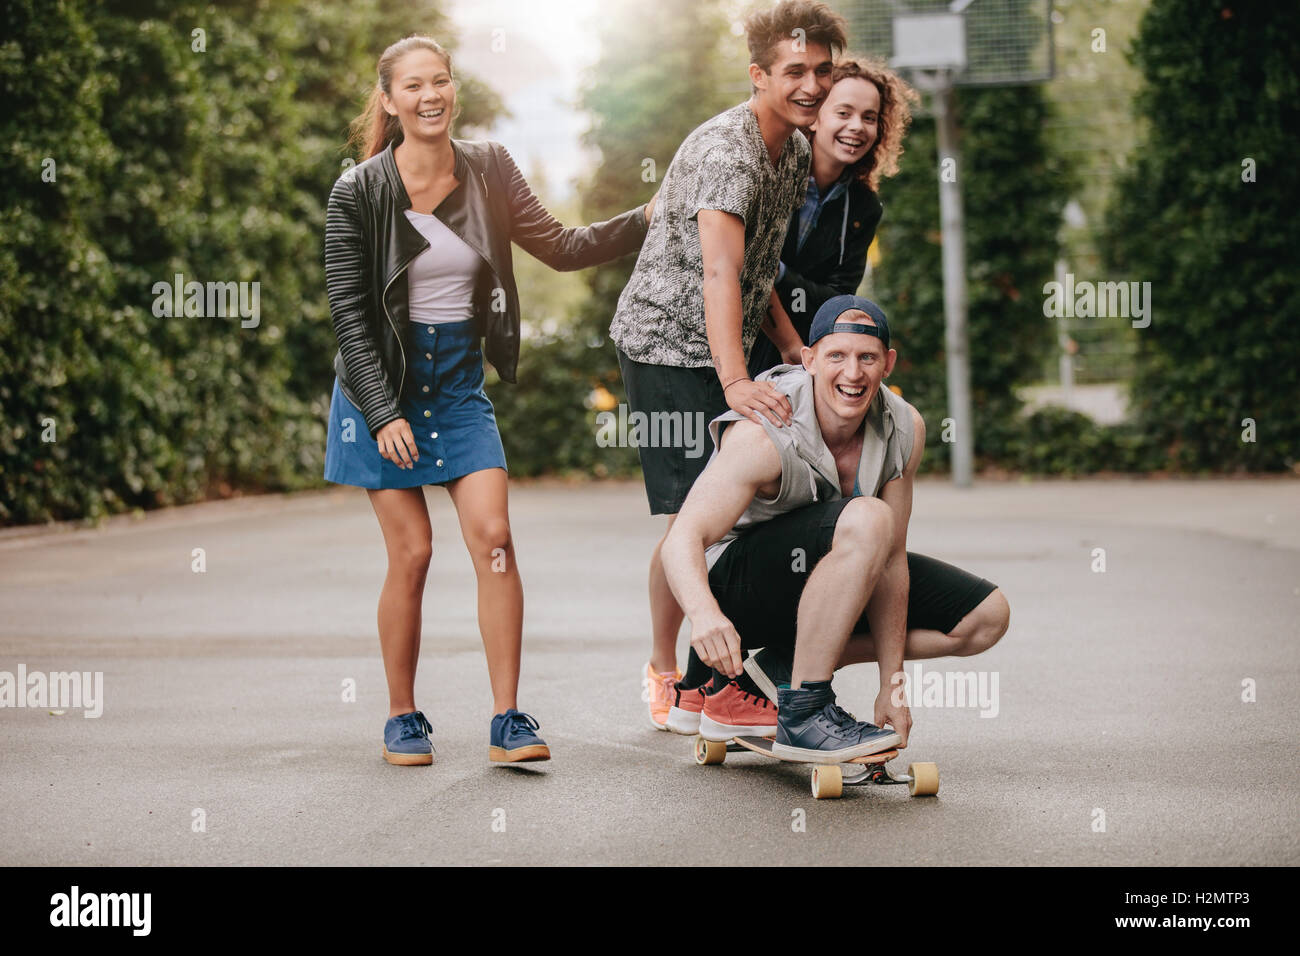 Full length shot of teenage guys on skateboard with girls. Diverse group of friends having fun outdoors. - Stock Image